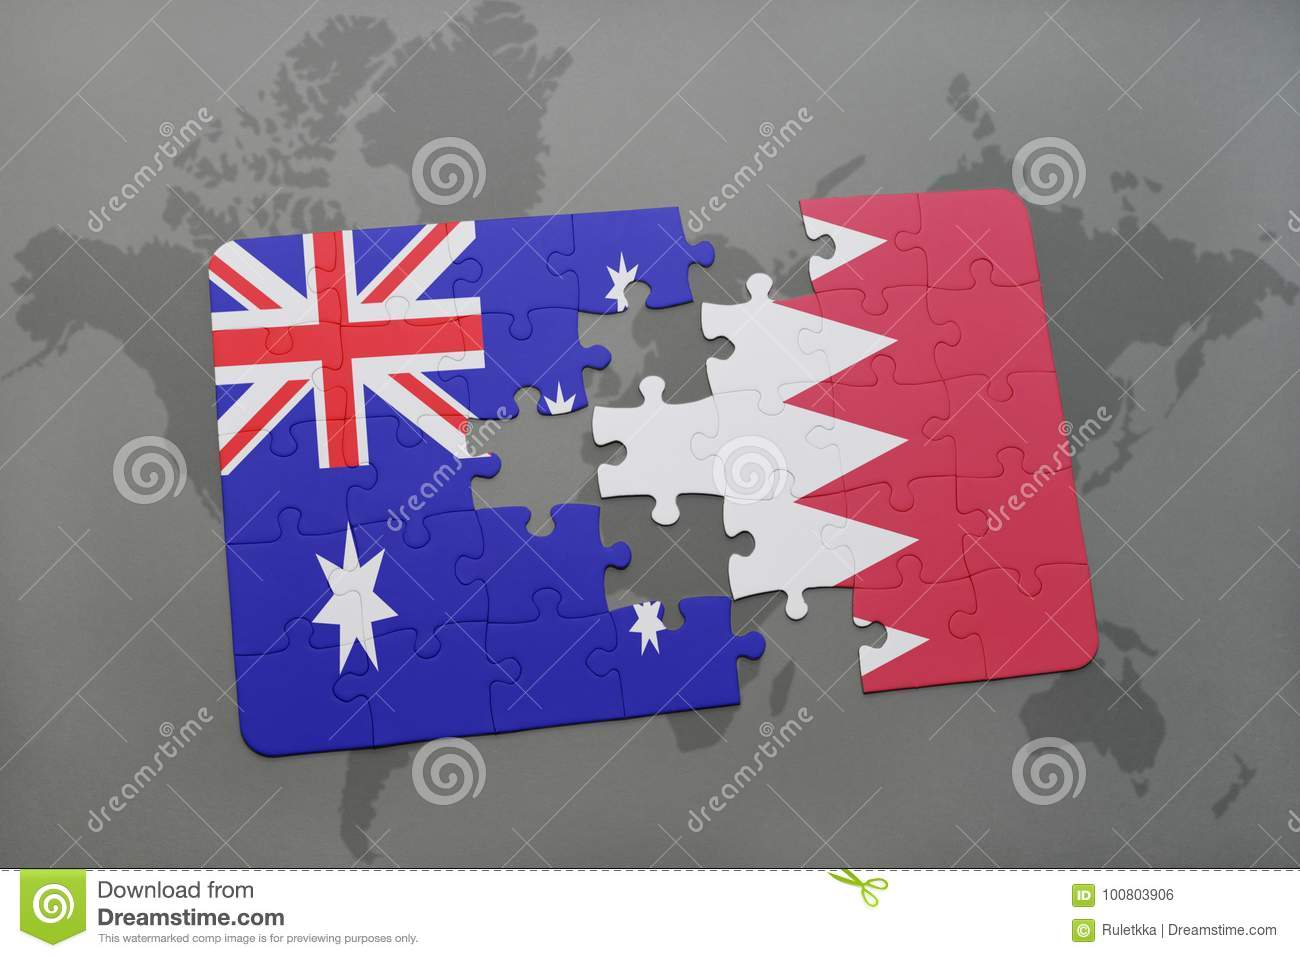 Bahrain On A World Map.Puzzle With The National Flag Of Australia And Bahrain On A World